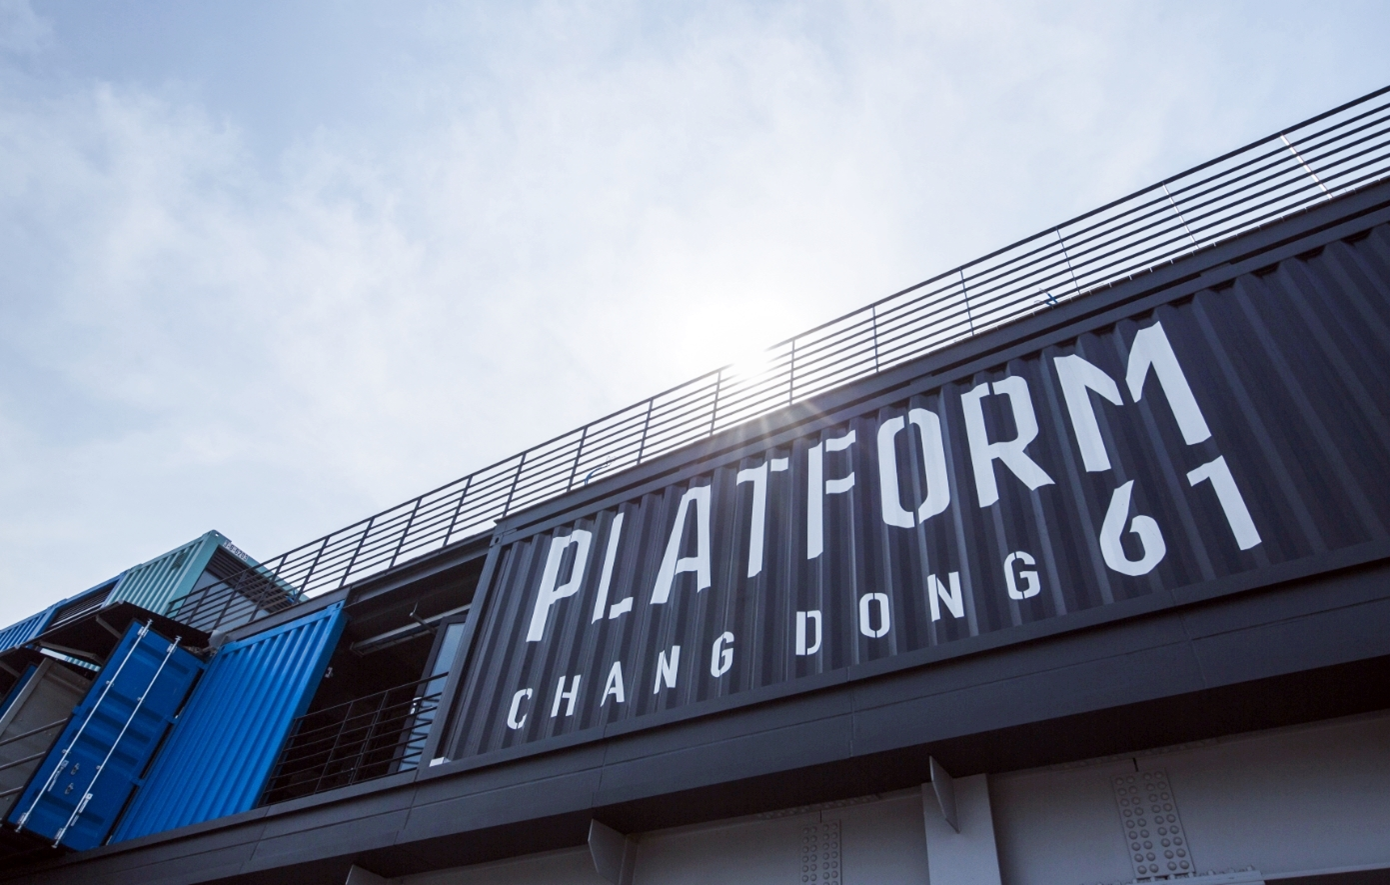 Platform Changdong 61's features are below.